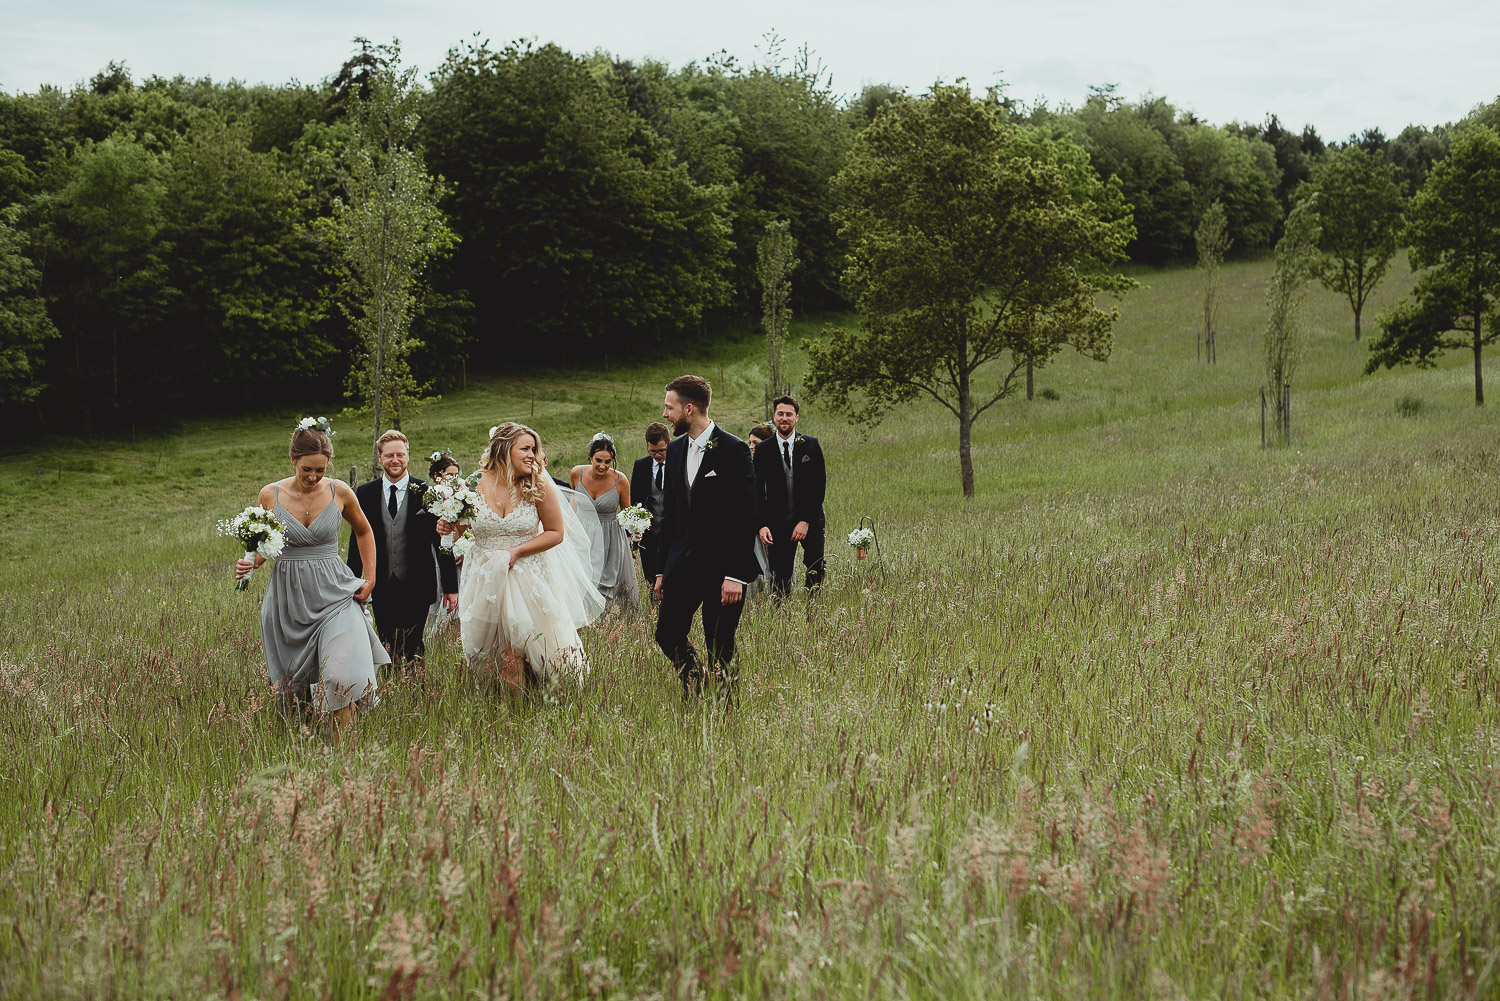 chaucer barn wedding by georgia rachael photography norfolk